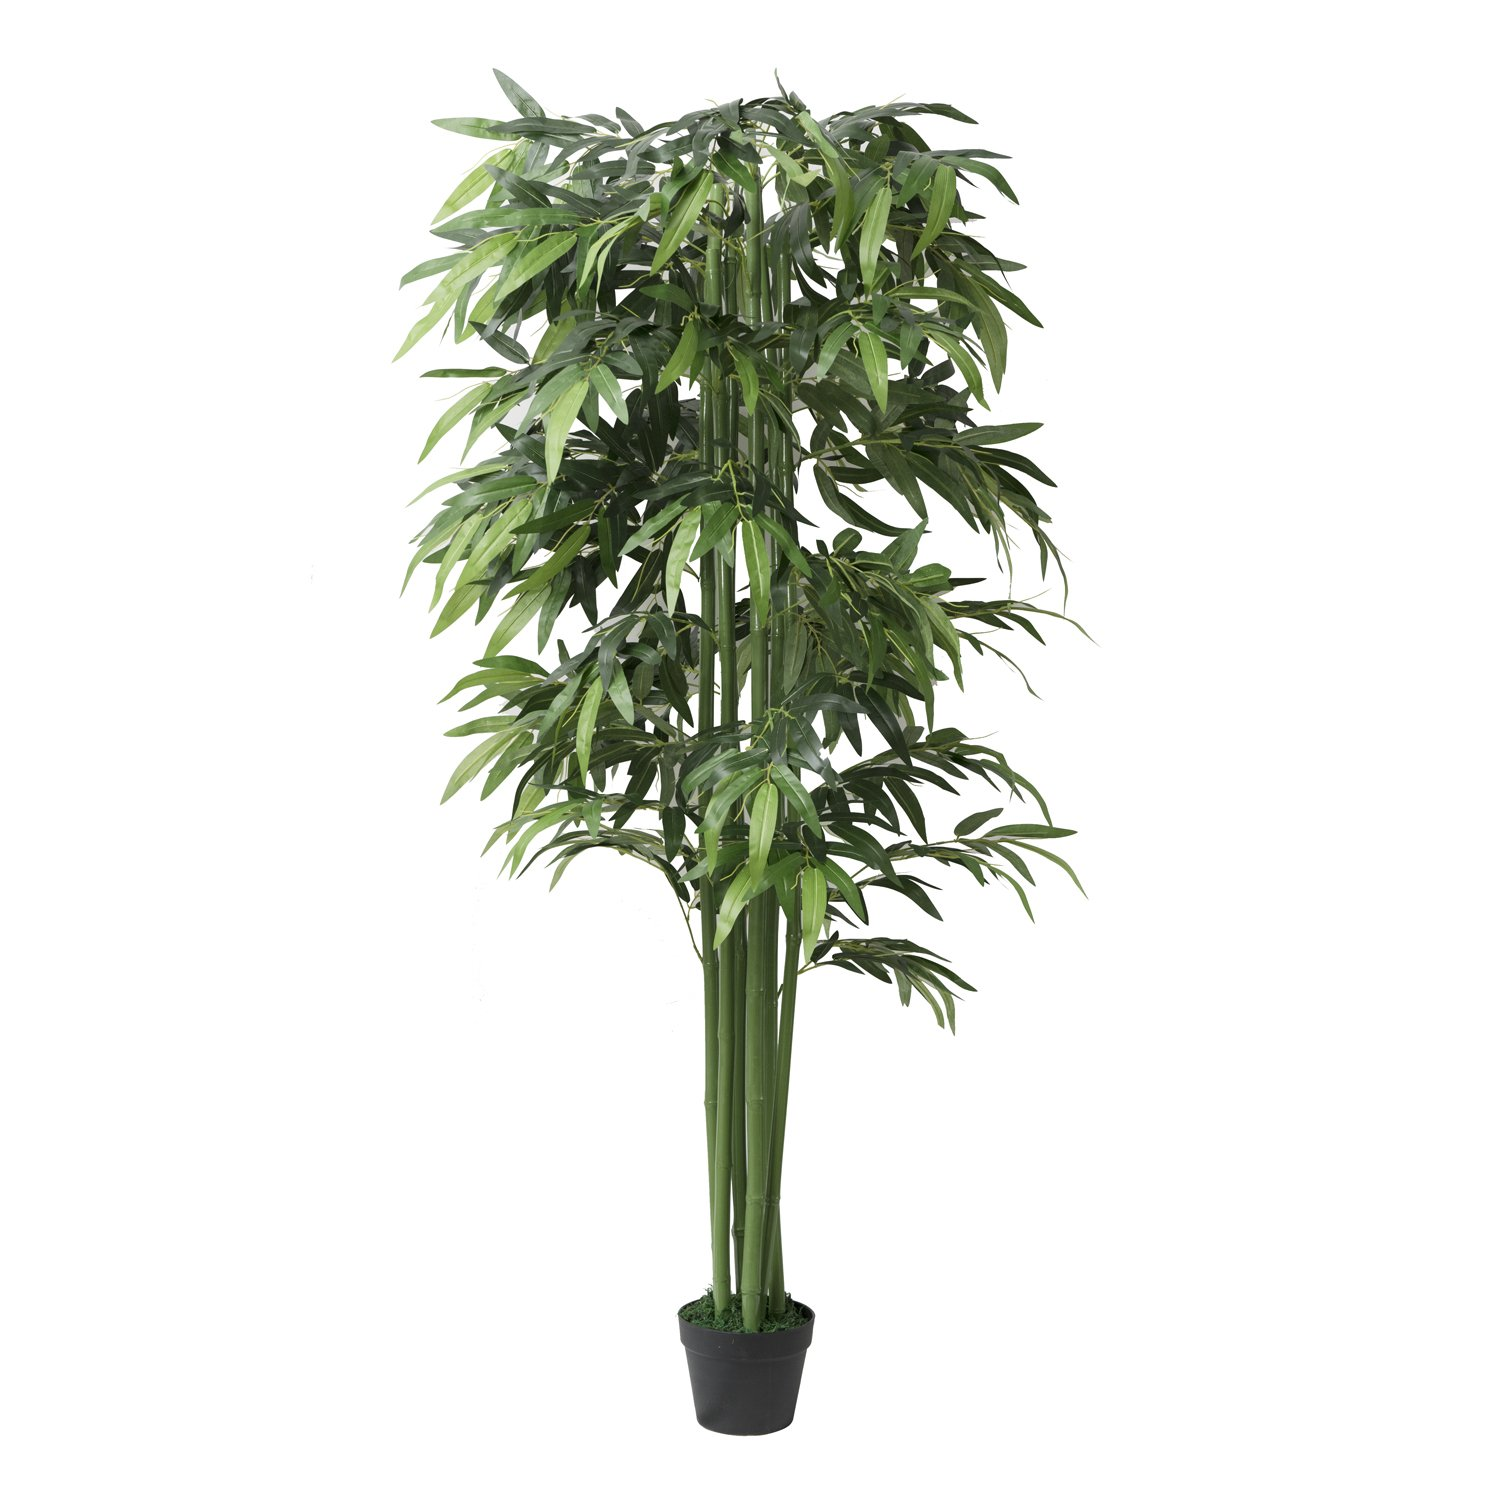 5.9Ft Potted Artificial Bamboo Tree Plant - Handmade Greenery Leaf Floor Plants for Indoor and Outdoor Decoration for Home Office and Hotels -Green Fake Plant Arrangement in Pot 1 Piece